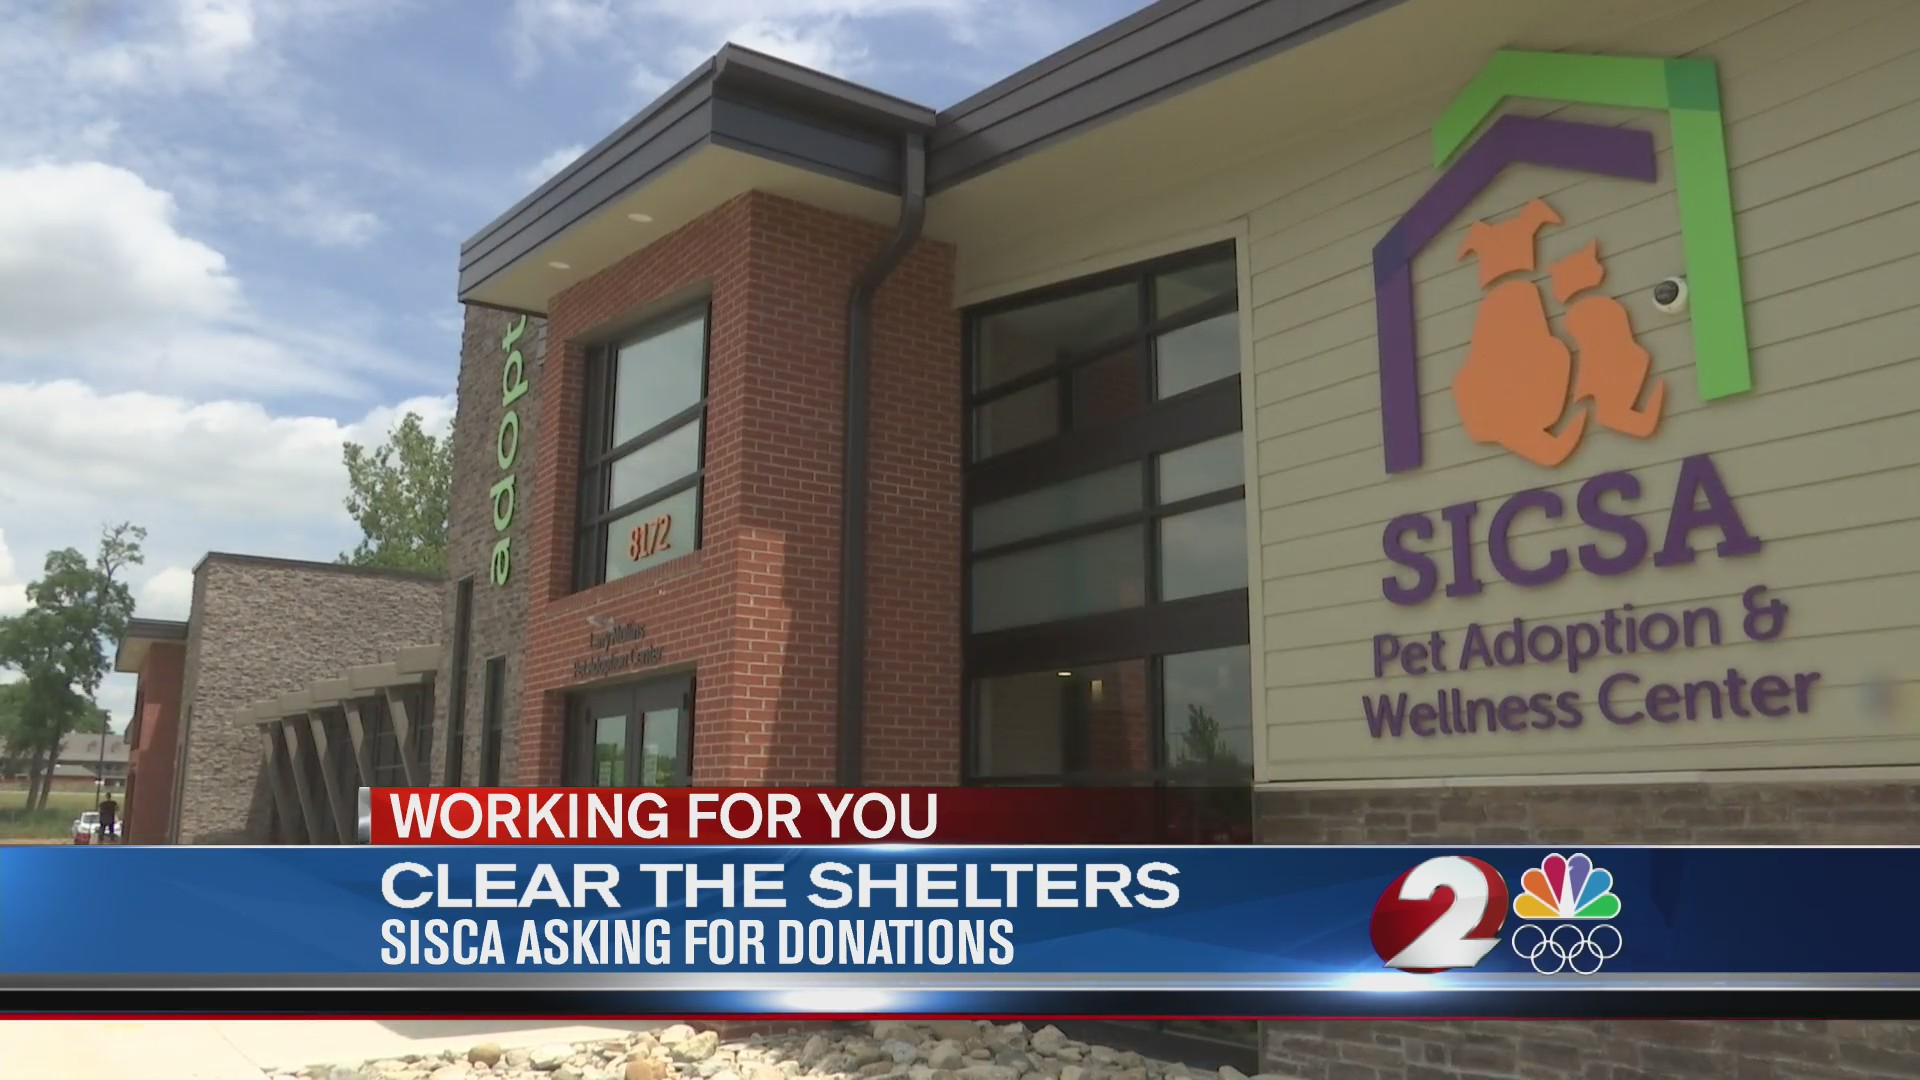 Clear the Shelters SICSA asking for donations